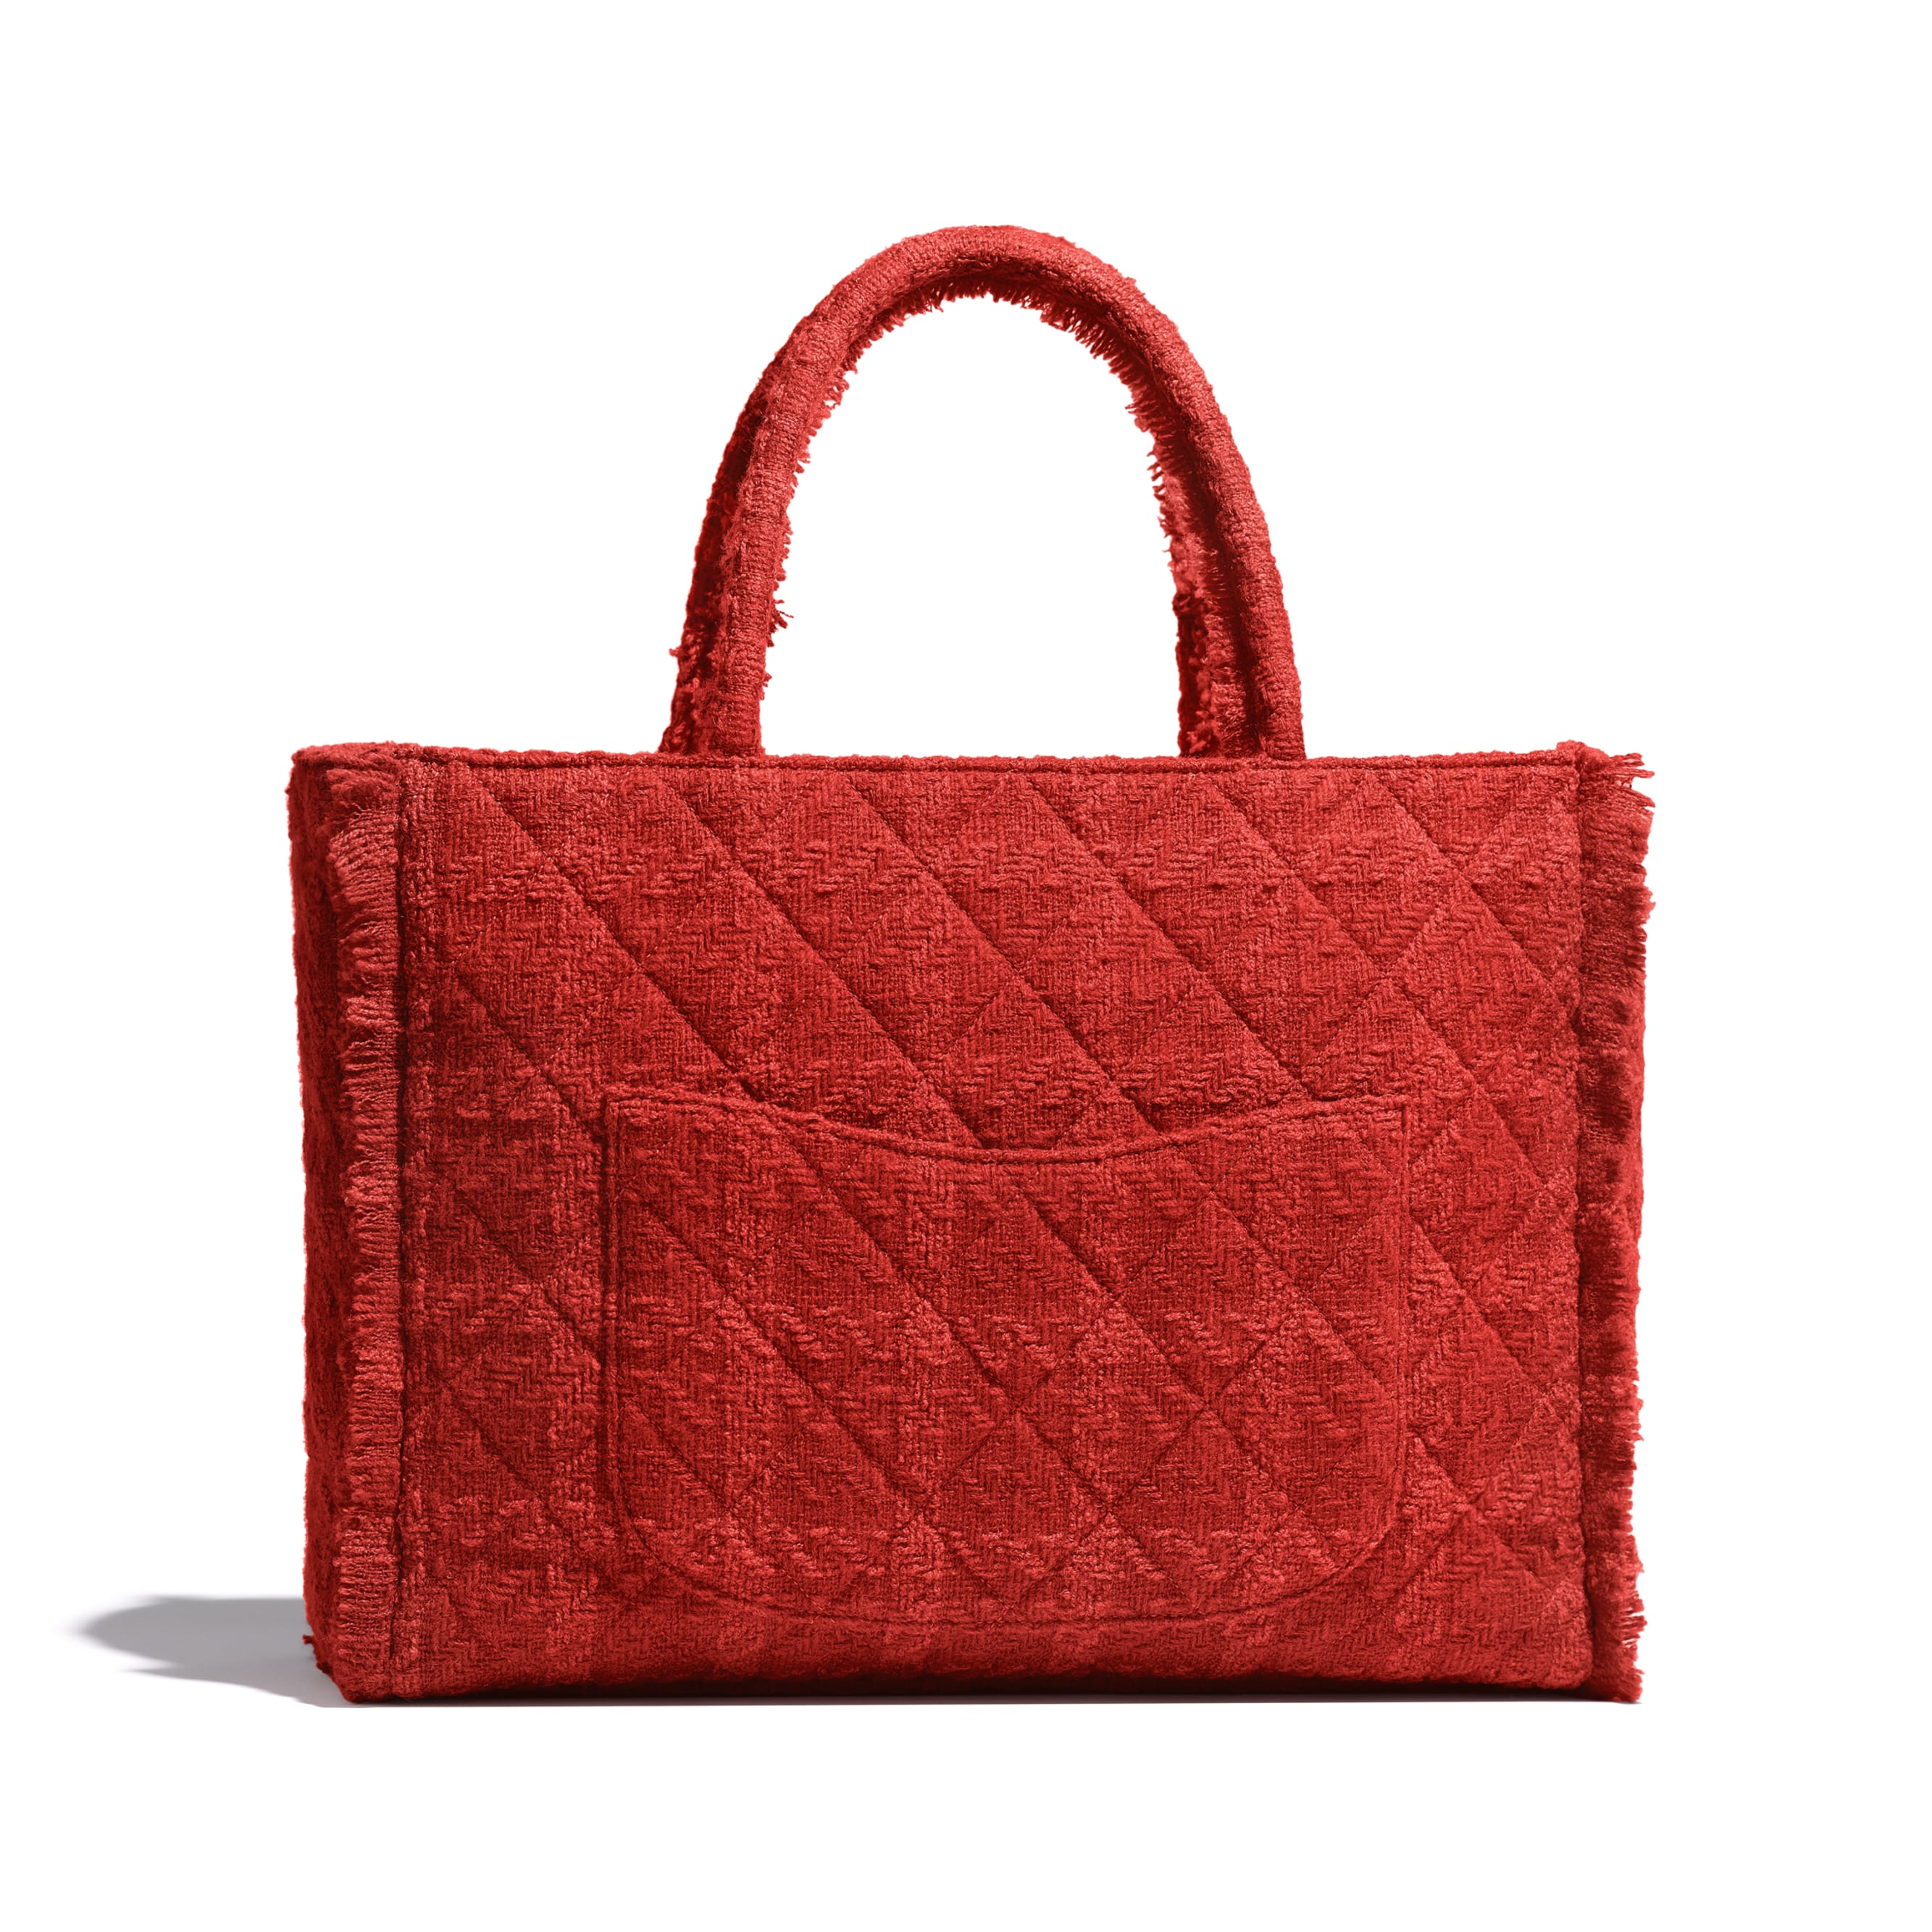 Large Zipped Tote - Red - Wool Tweed & Gold-Tone Metal - Alternative view - see standard sized version